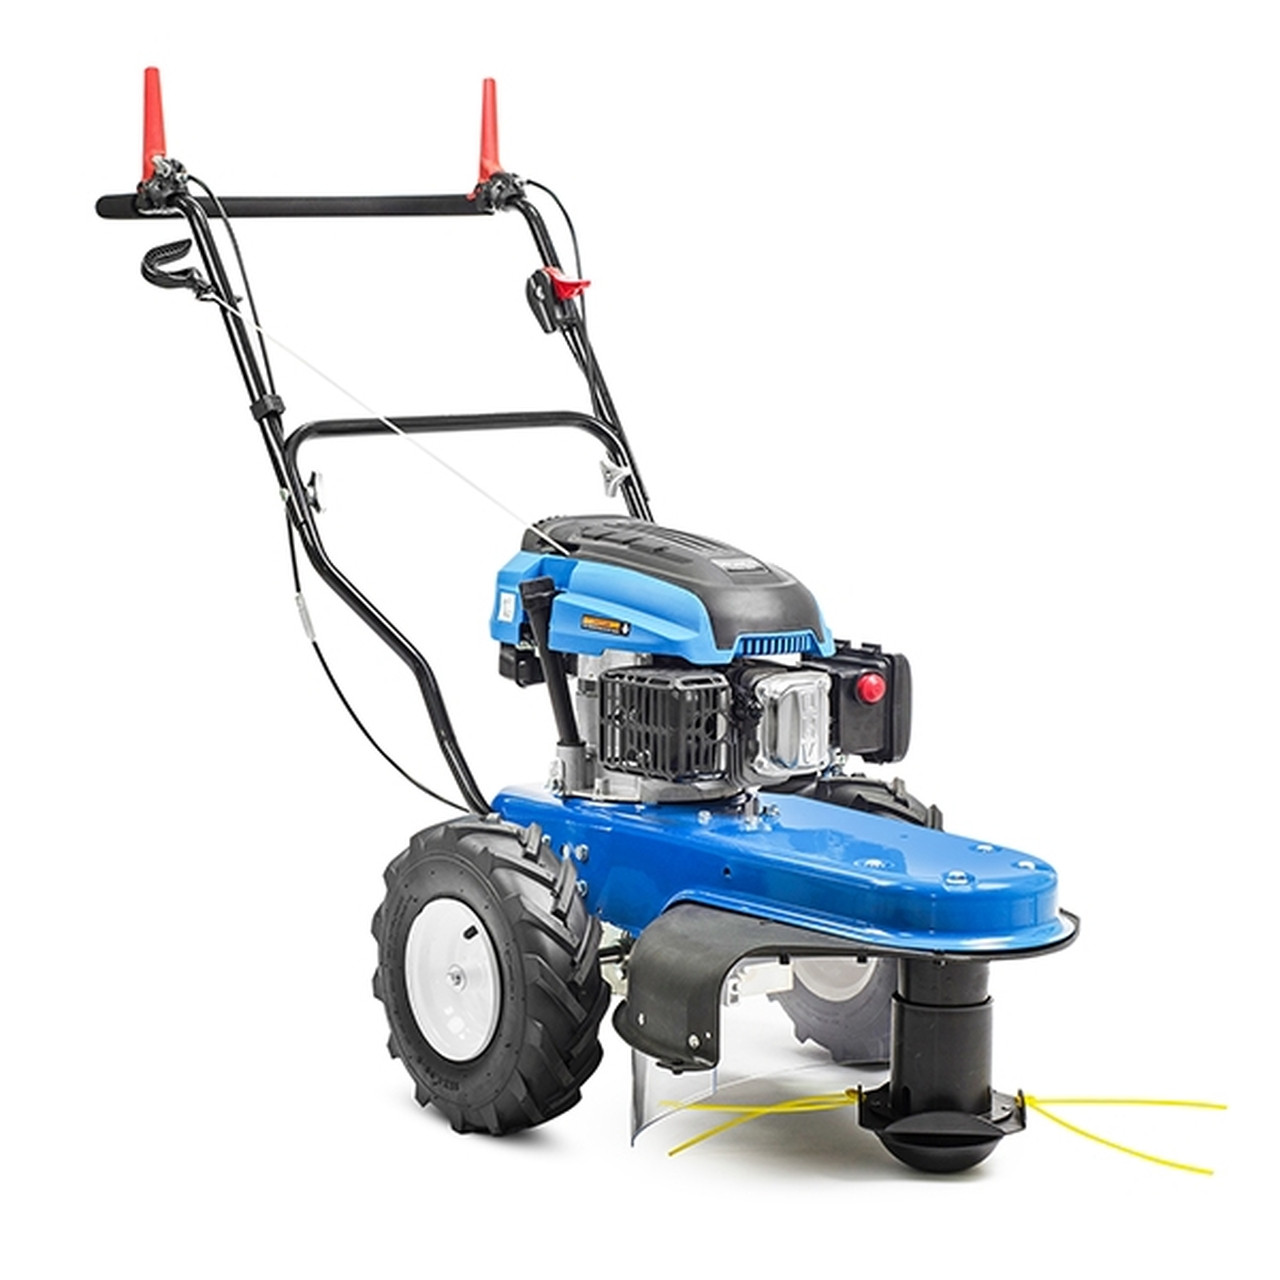 Grass Trimmer on Wheels for a Large Area